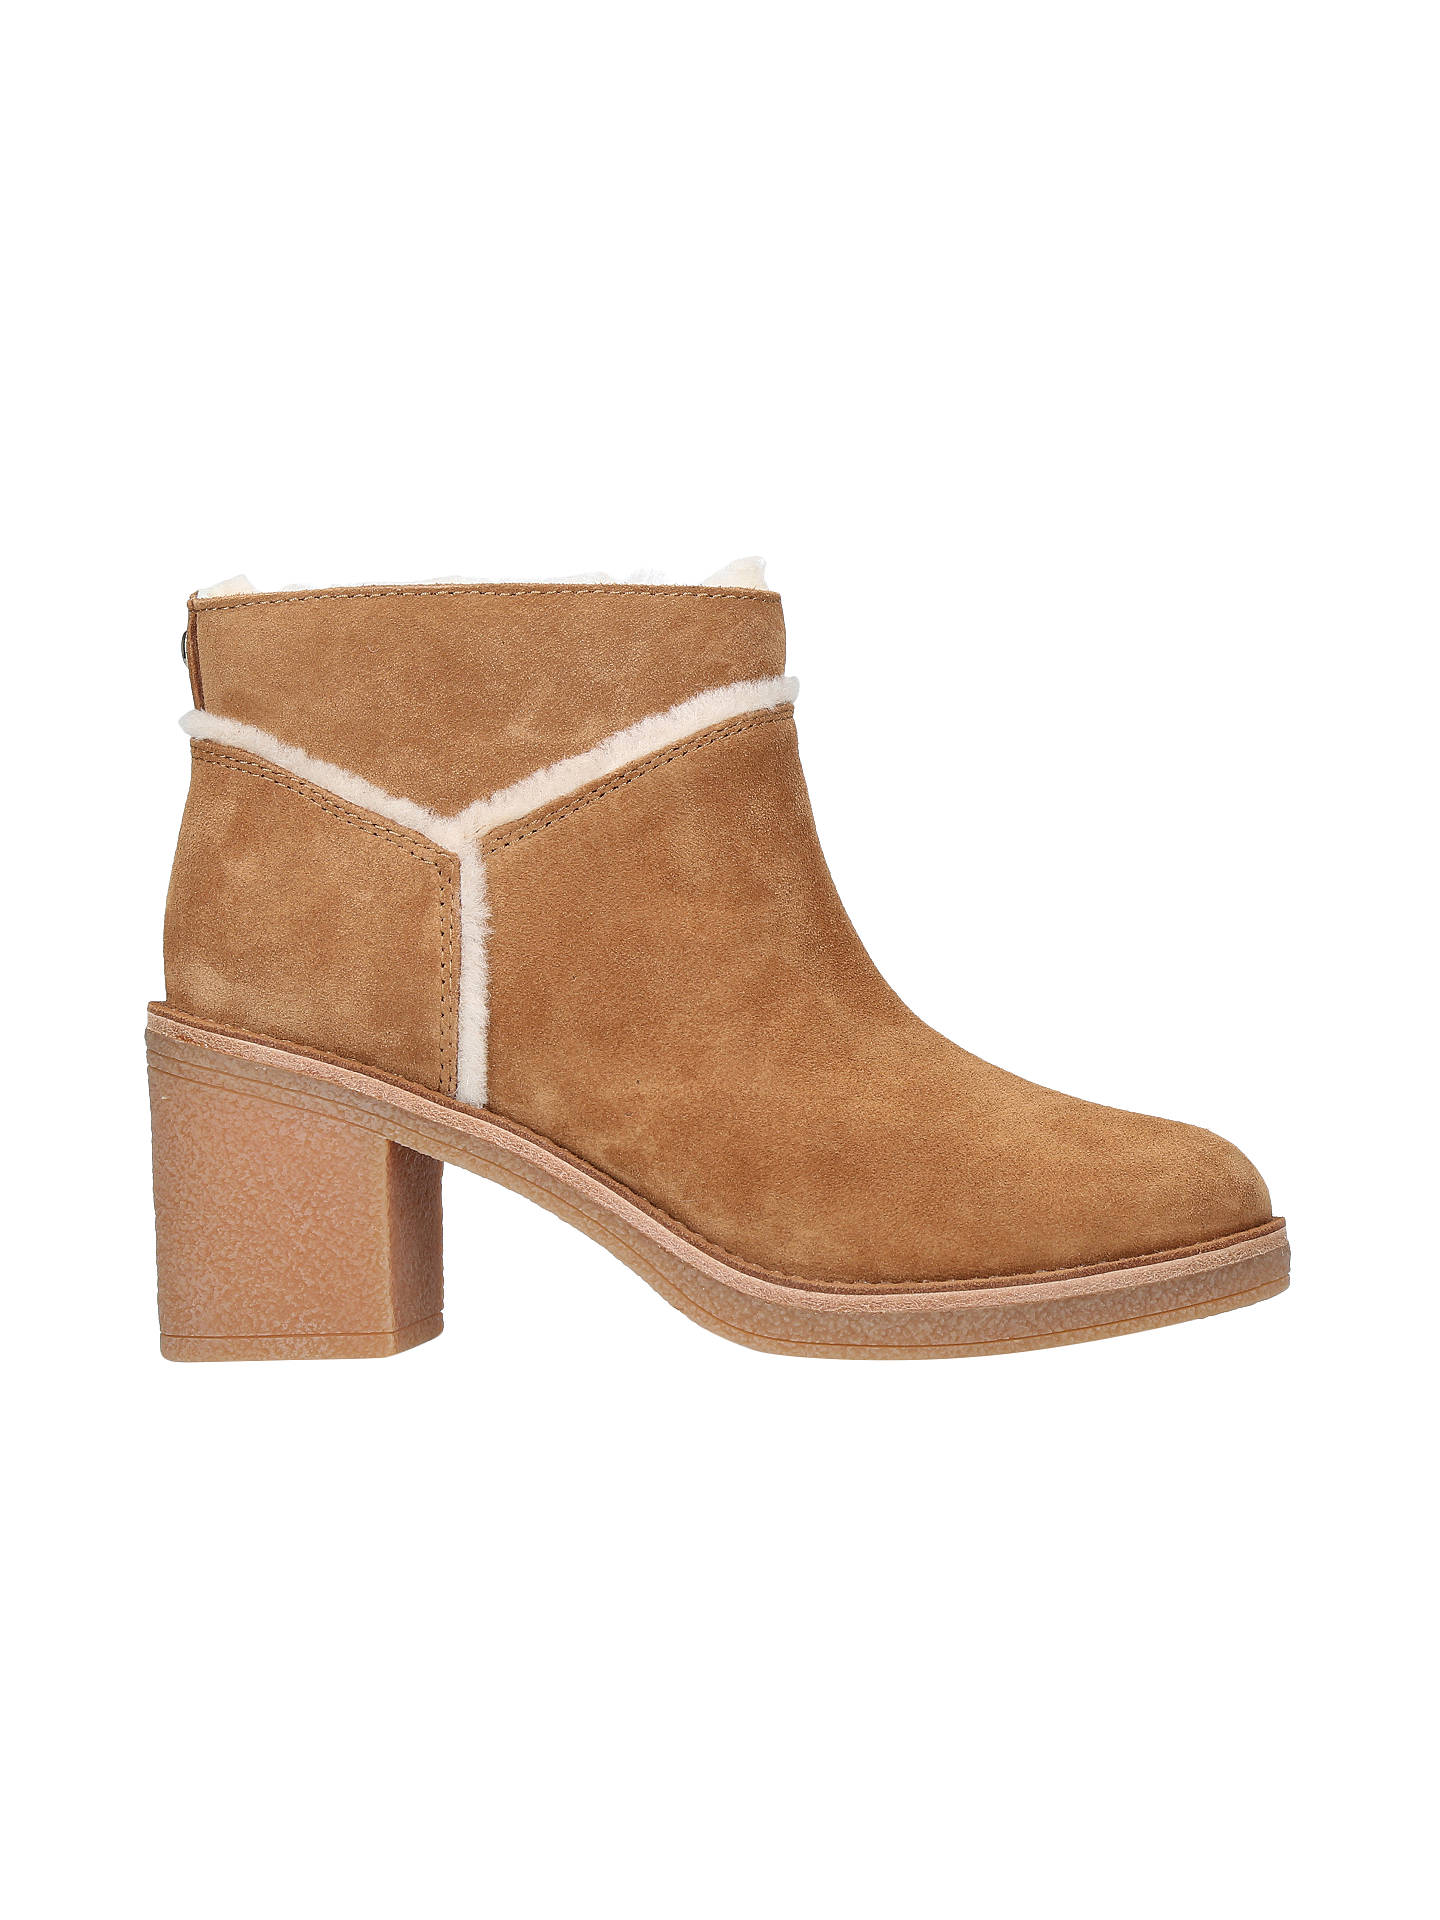 cf88b94827b UGG Kasen Ankle Boots at John Lewis & Partners